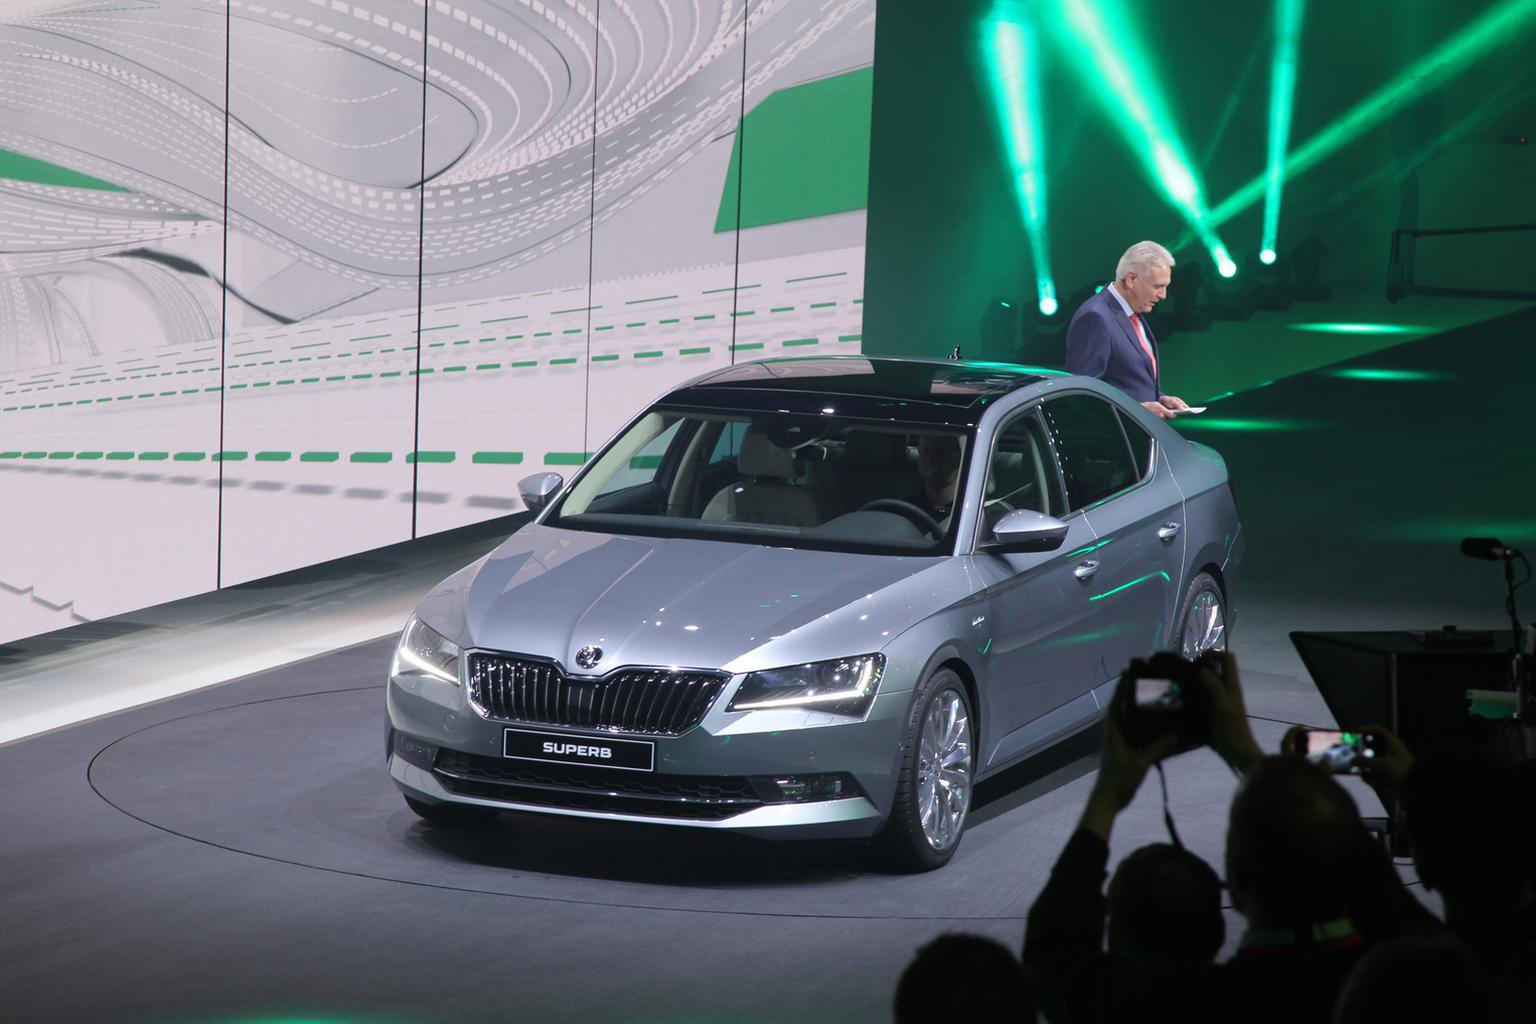 2015 Skoda Superb - full pricing, engines and our pictures